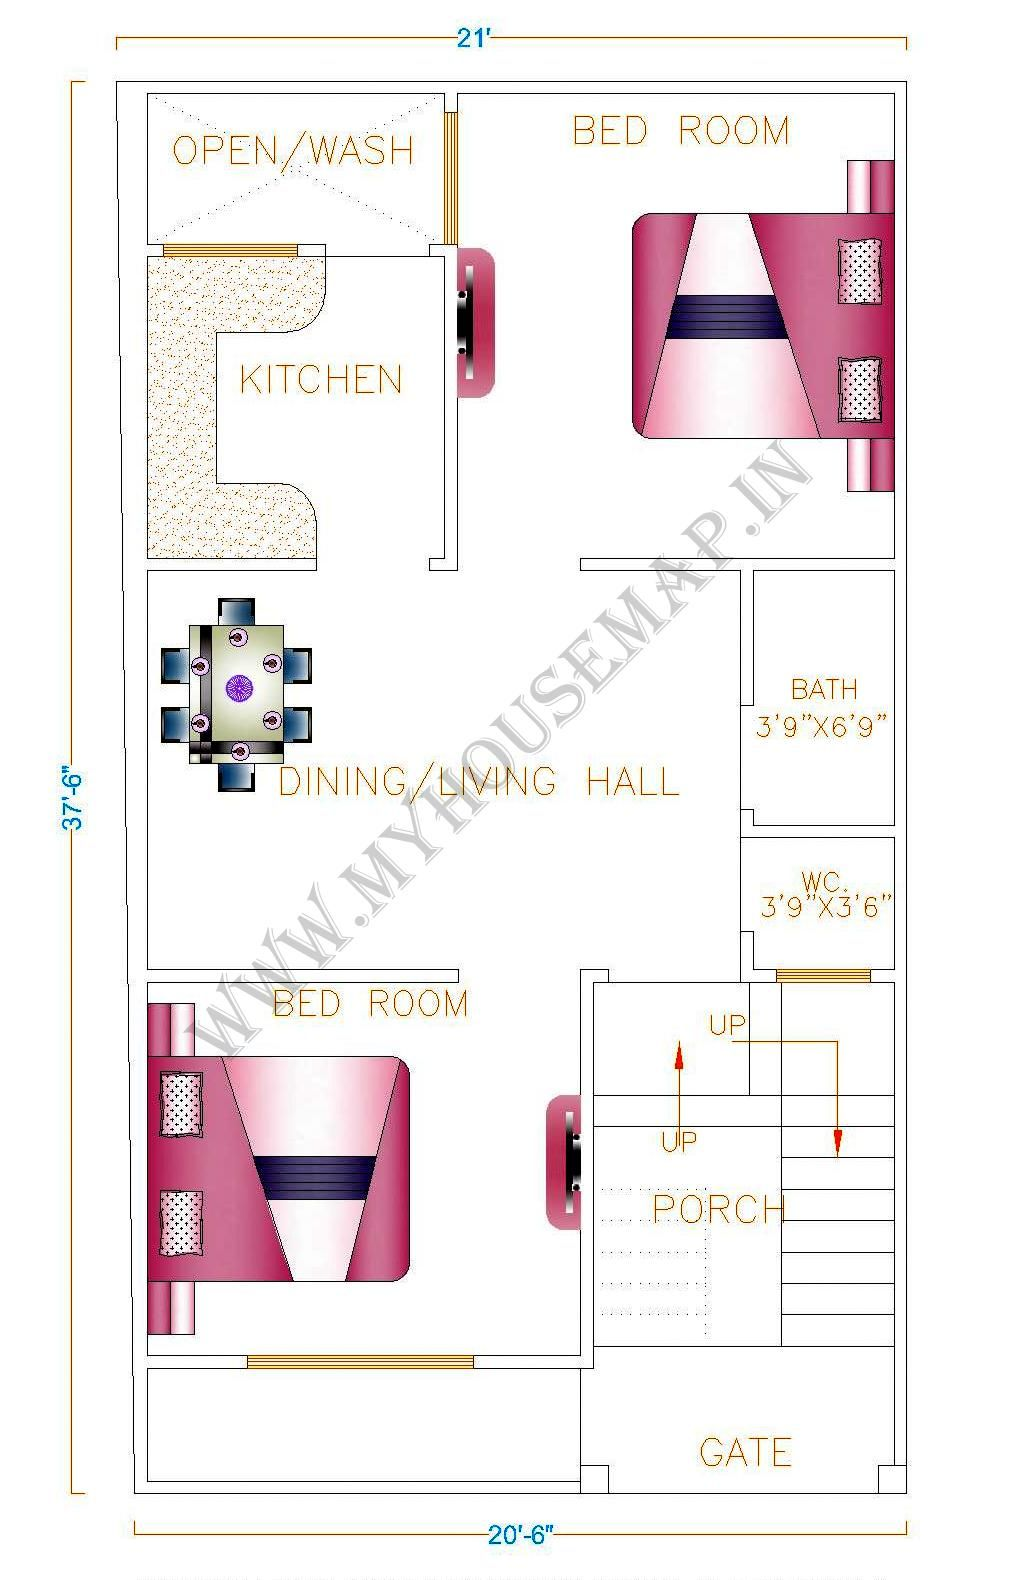 House Map Front Elevation Design House Map Building Design House Designs House Plans House Map Home Map Design Home Design Images